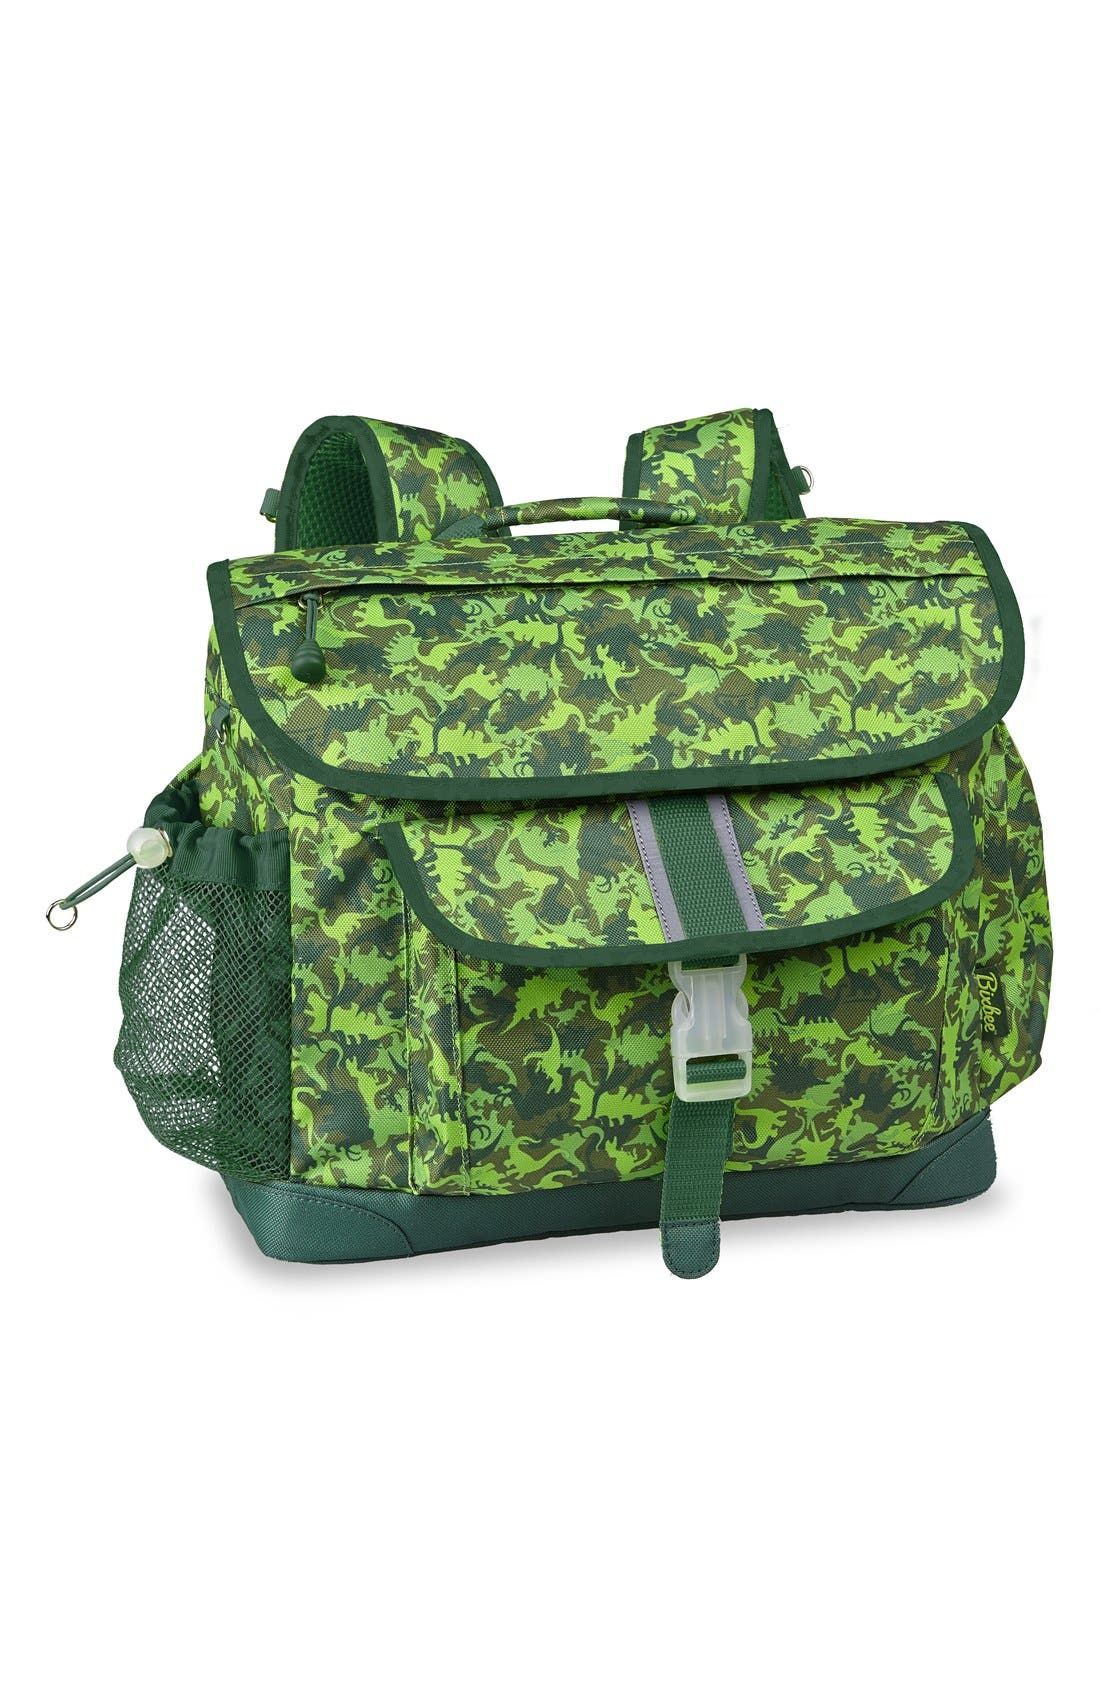 Bixbee 'Medium Dino Camo' Water Resistant Backpack (Kids)